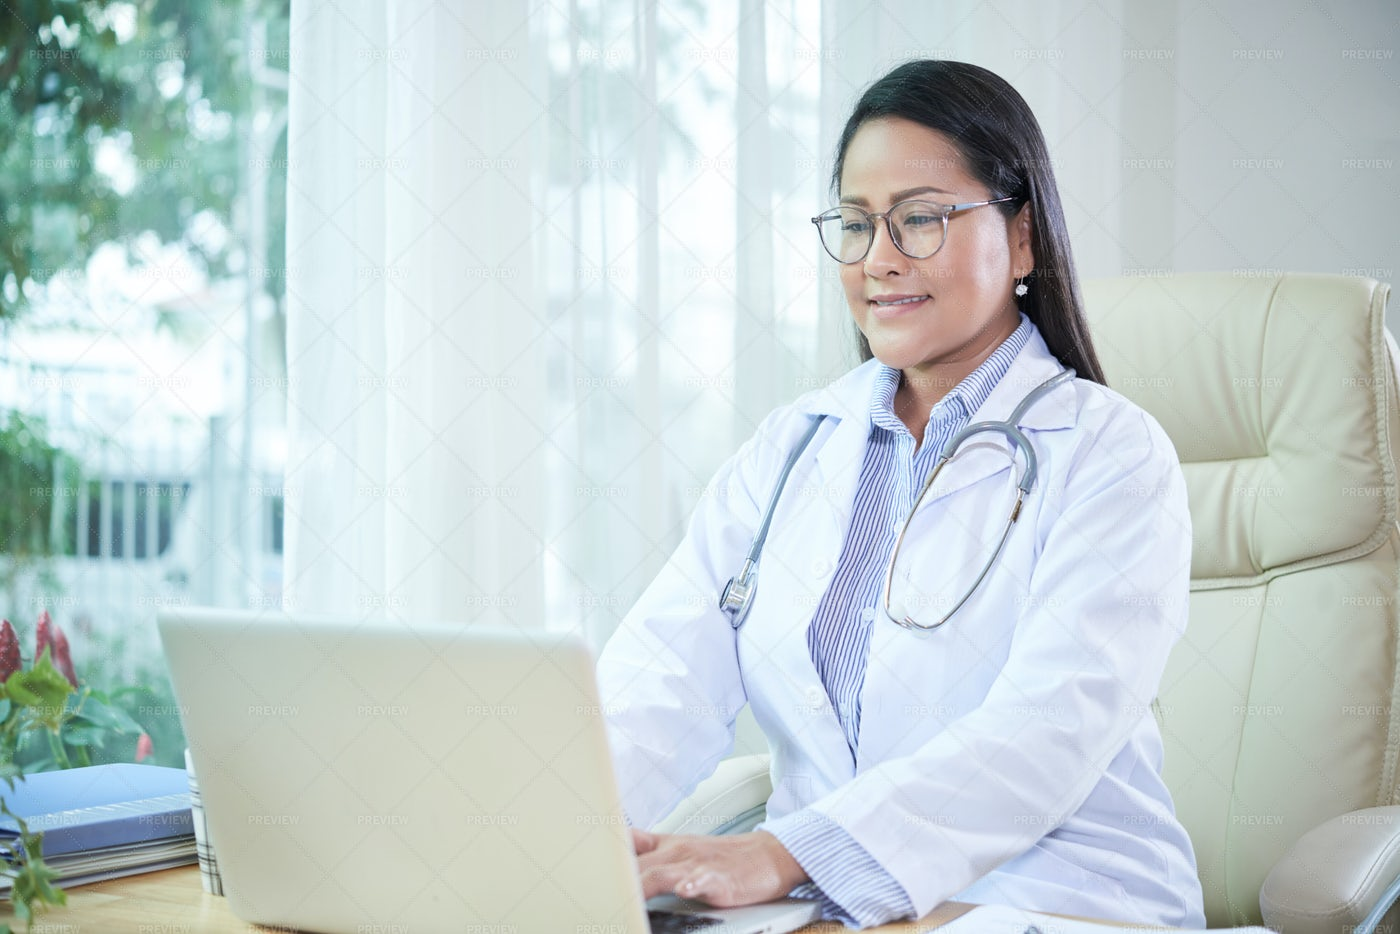 Smiling Doctor Working On Laptop: Stock Photos